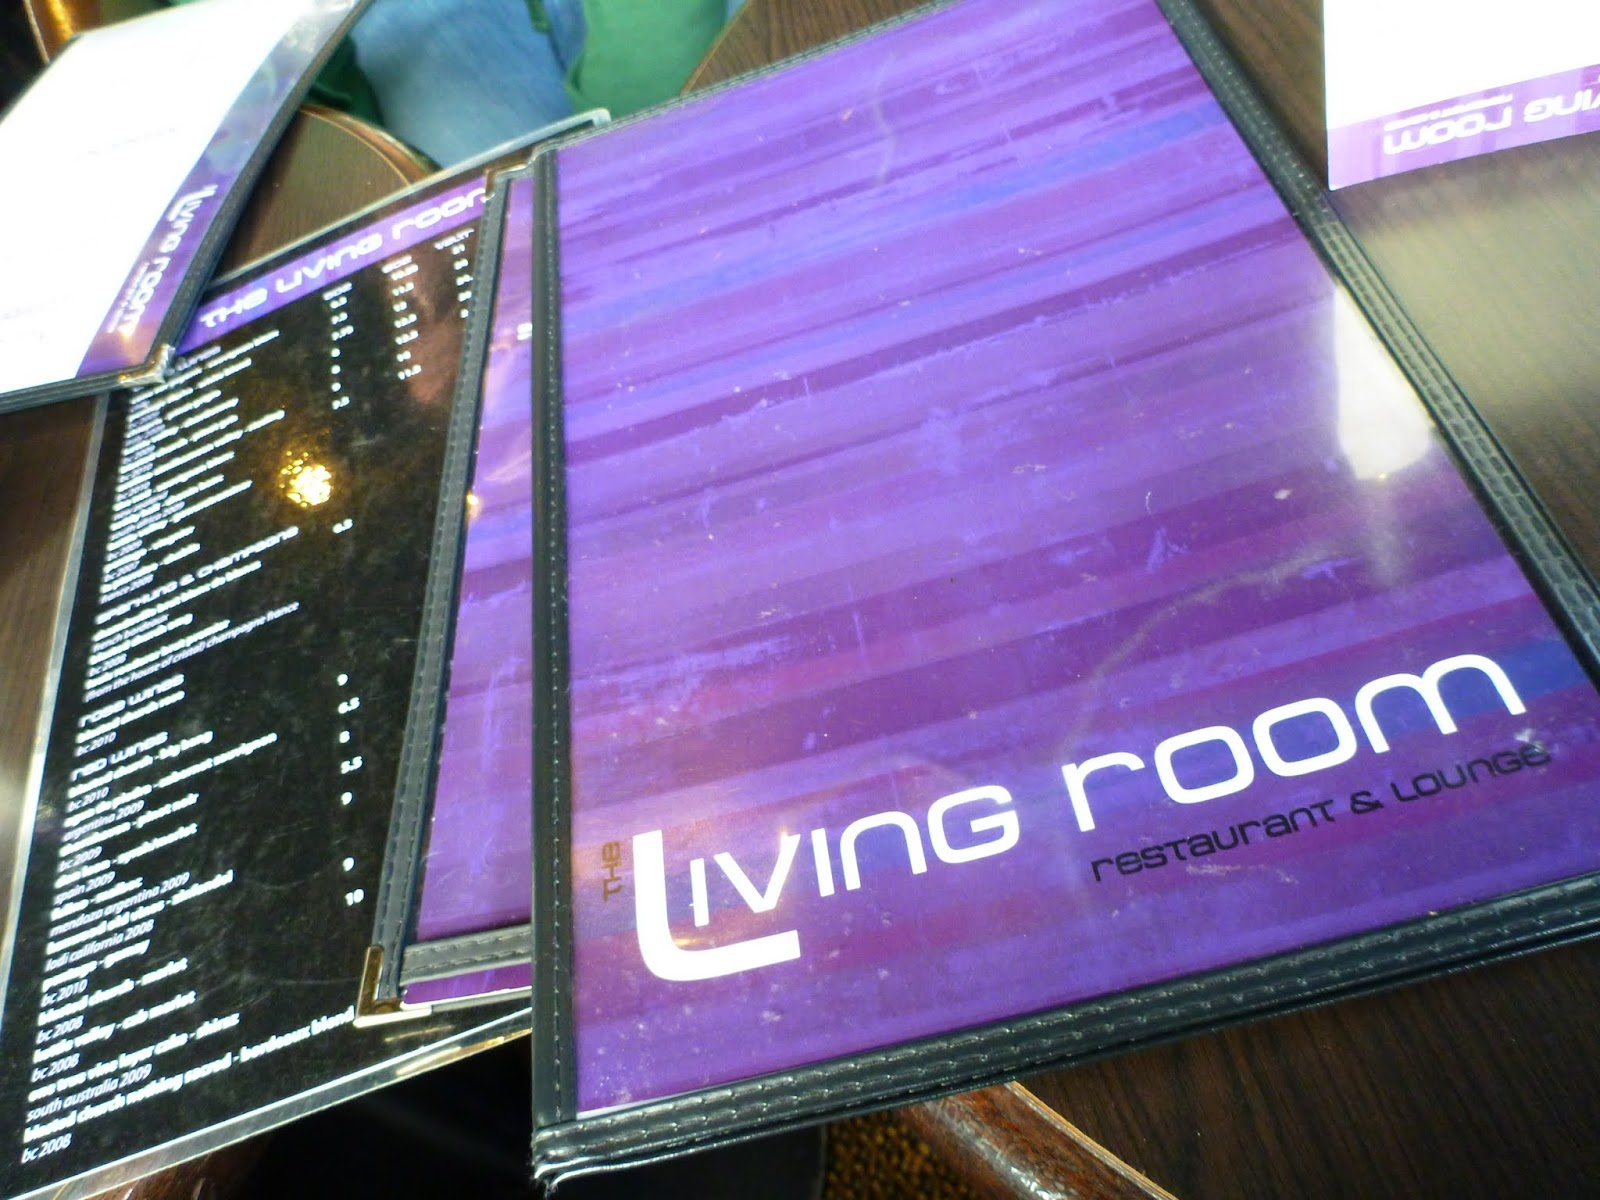 Living Room Restaurant Lounge